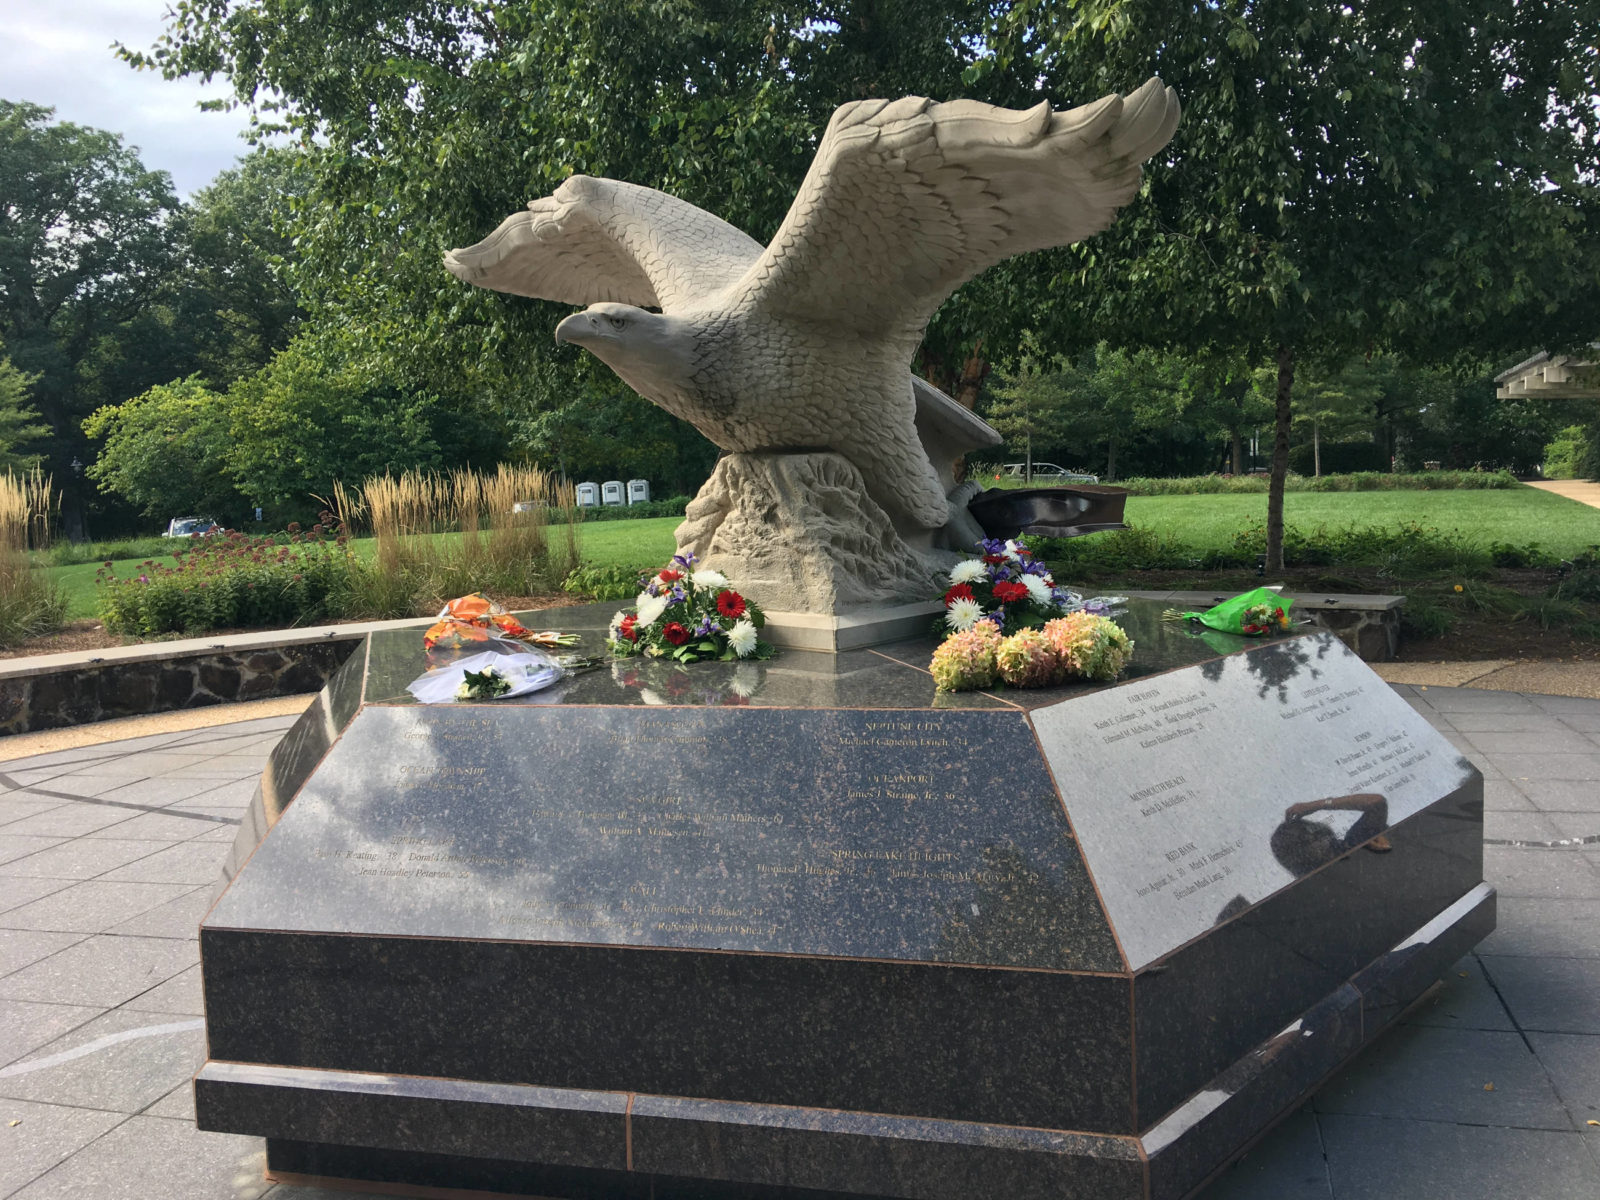 Eagle statue memorial to victims of 911 in Atlantic Highlands New Jersey